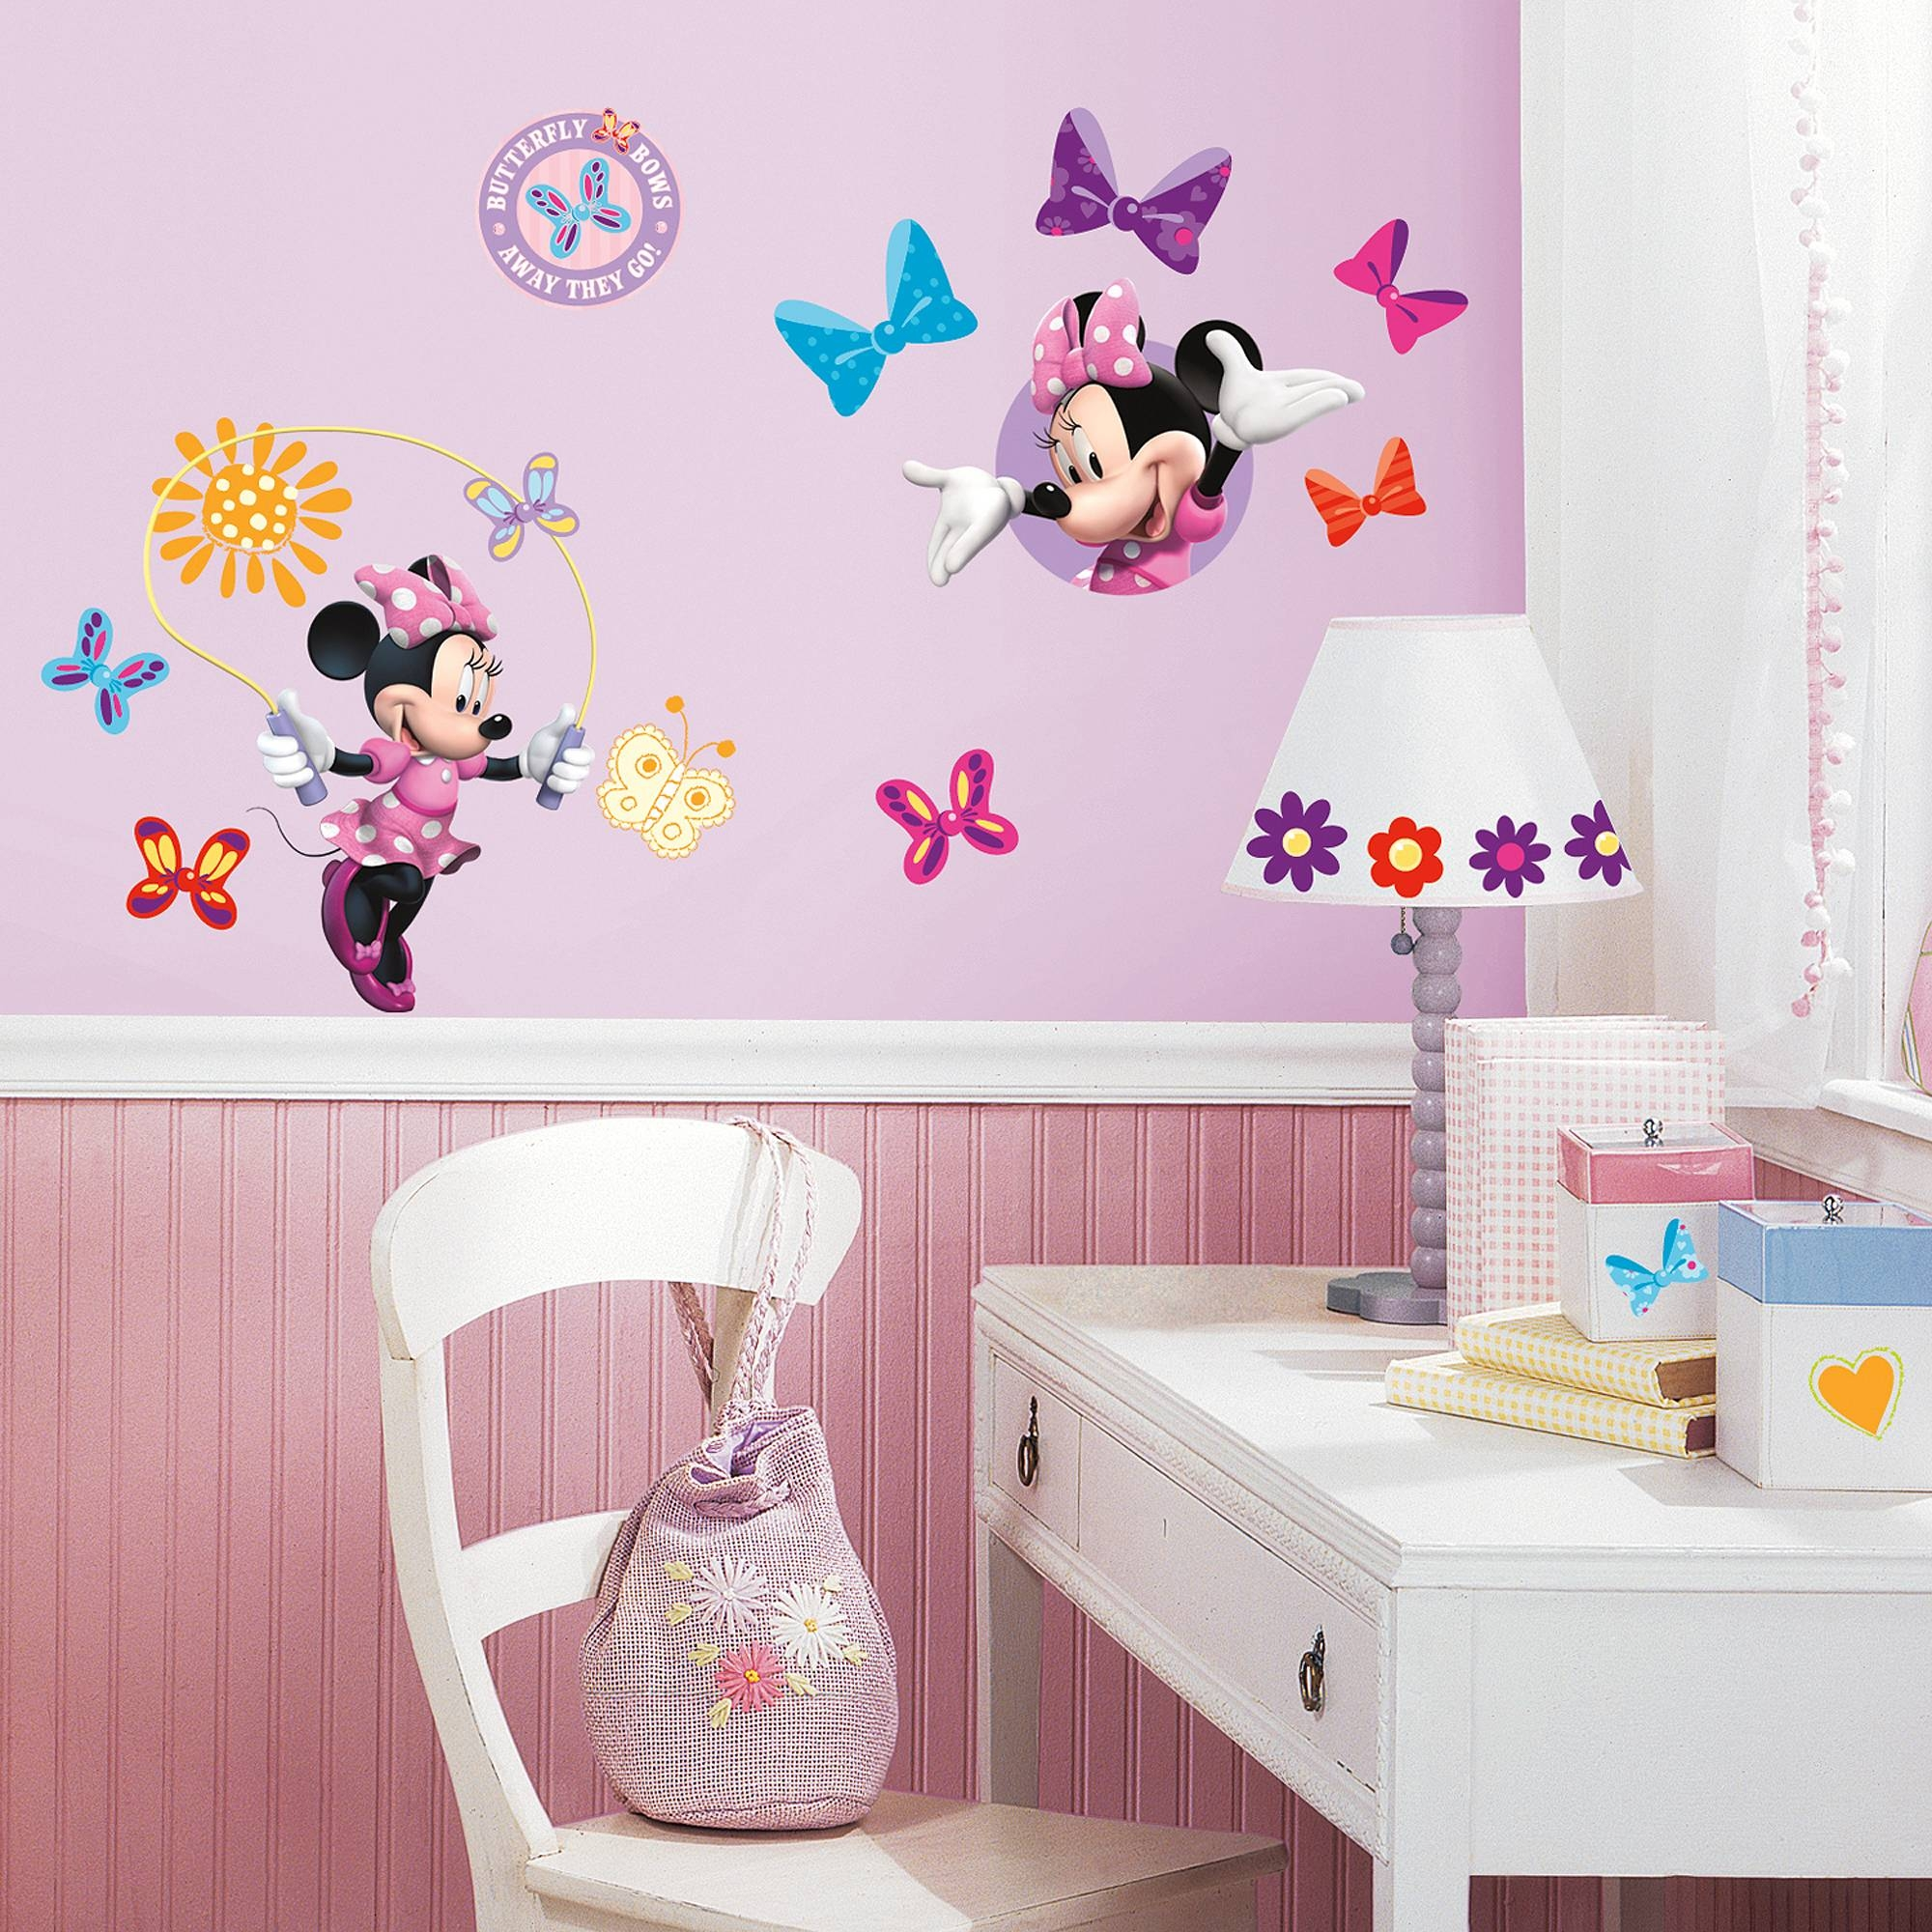 Wall Pops Hoot And Hangout Wall Decal Kit – Walmart In Most Recently Released Walmart Wall Stickers (View 5 of 25)